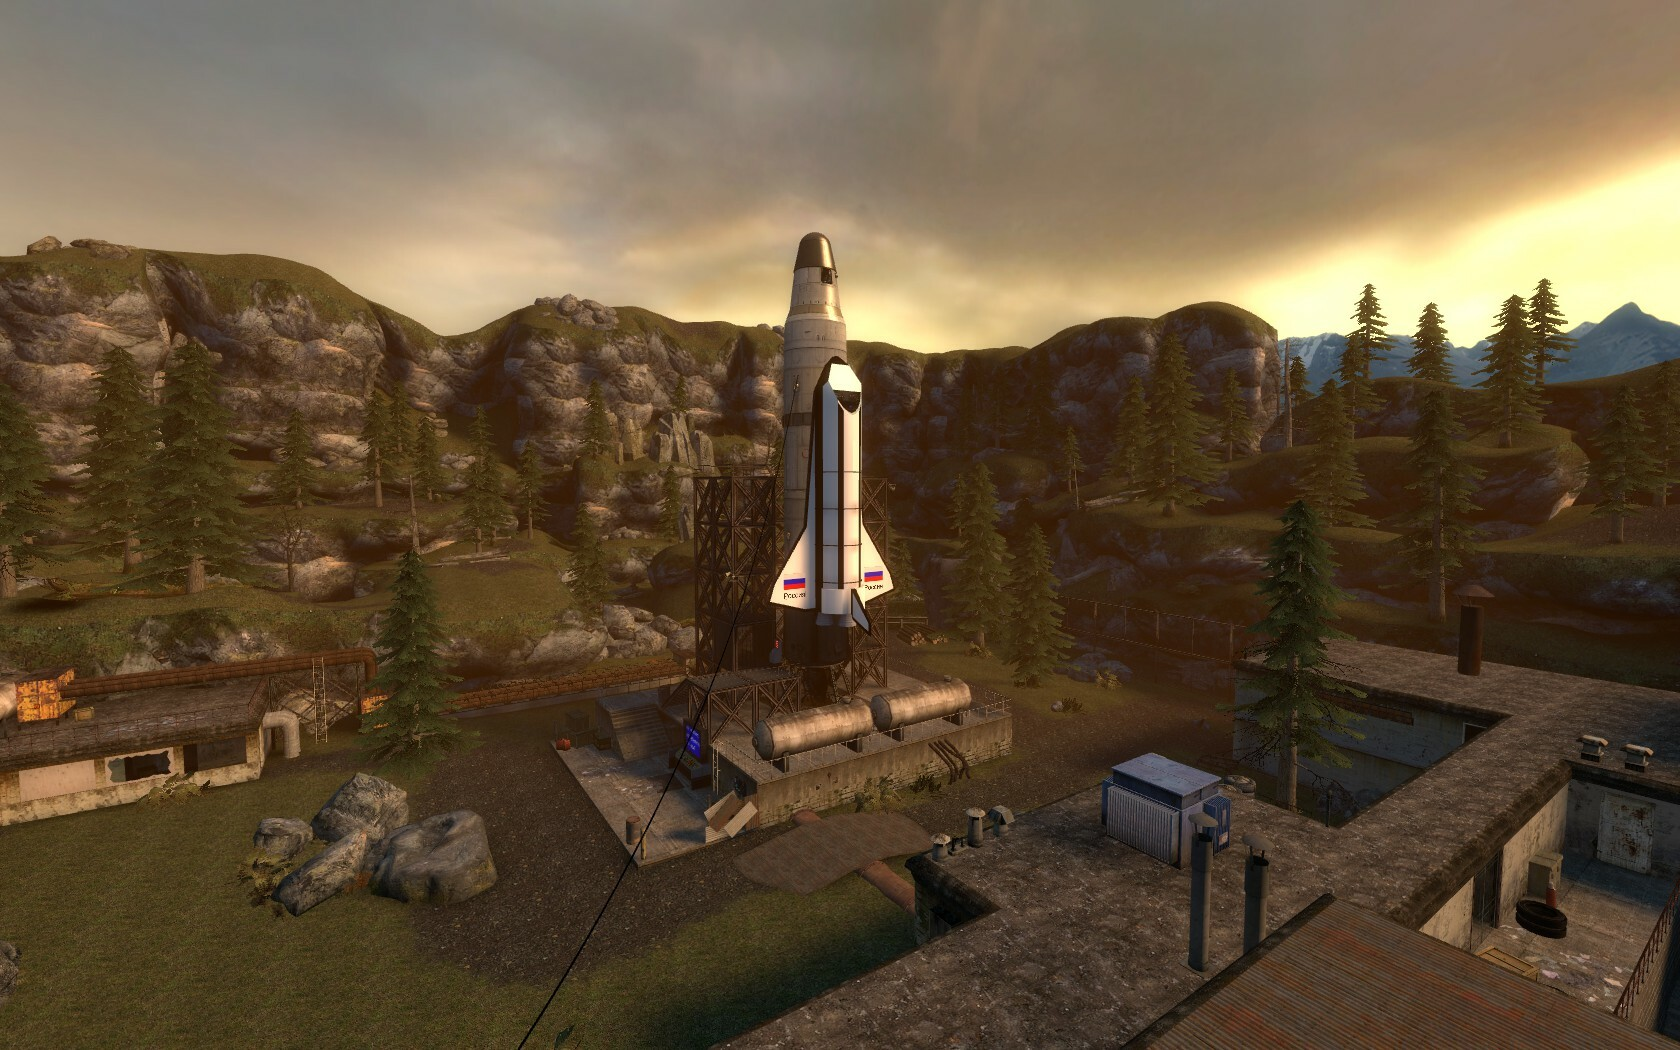 The final battle take place around a shuttle and rocket. The area needed to be open as the player would need to easily move around whilst fighting.